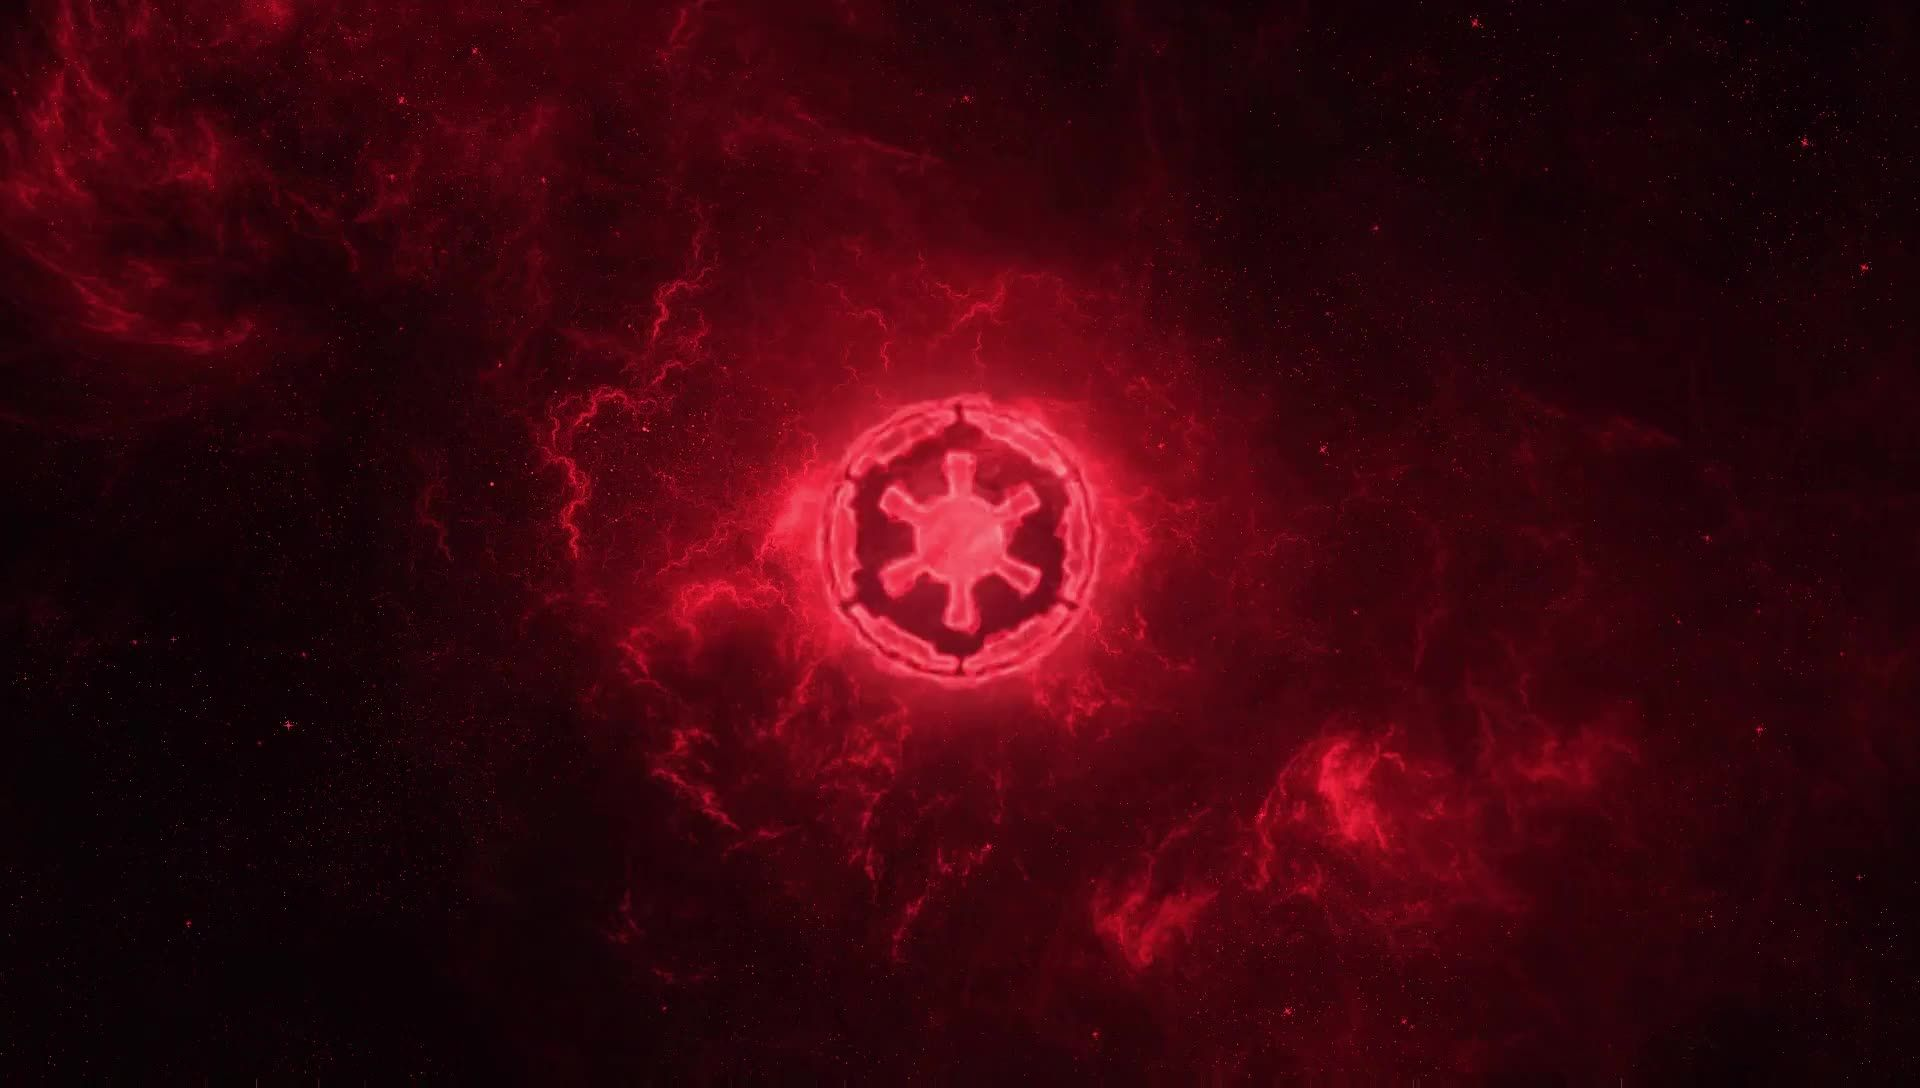 Star Wars Red Wallpaper Posted By Christopher Mercado